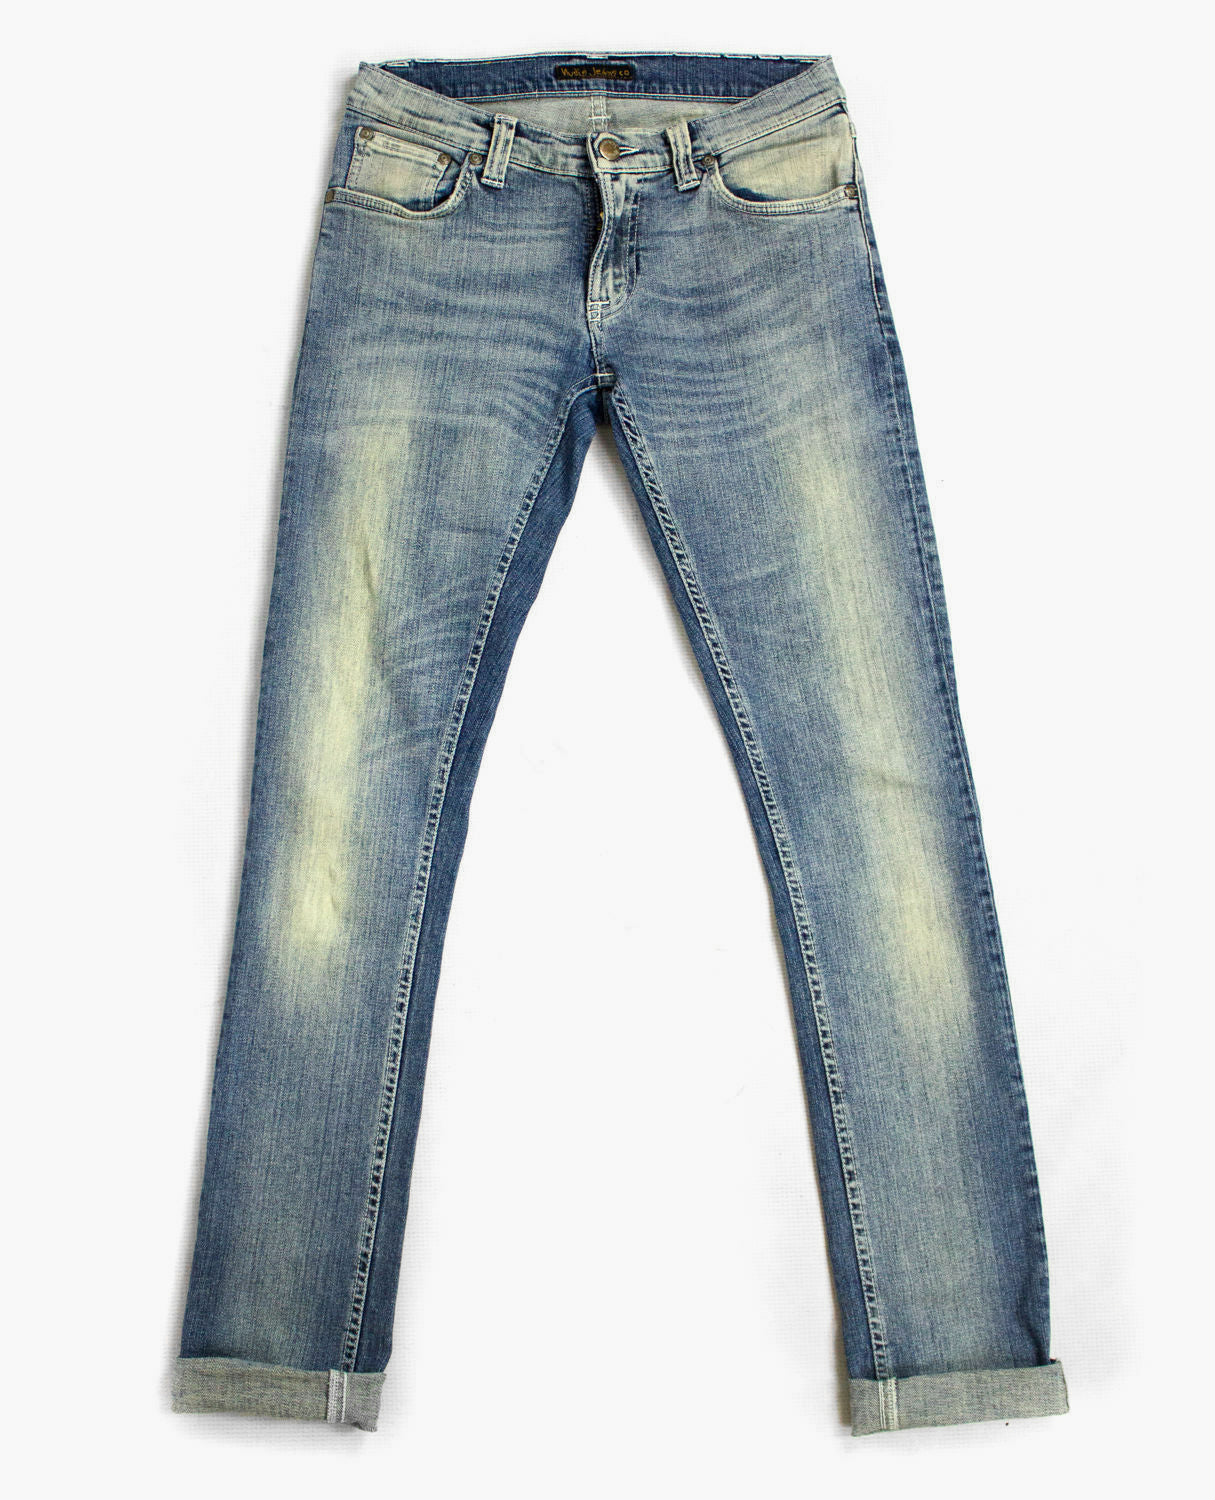 NUDIE JEANS unisex skinny stretch jeans, 26/32 - secondfirst